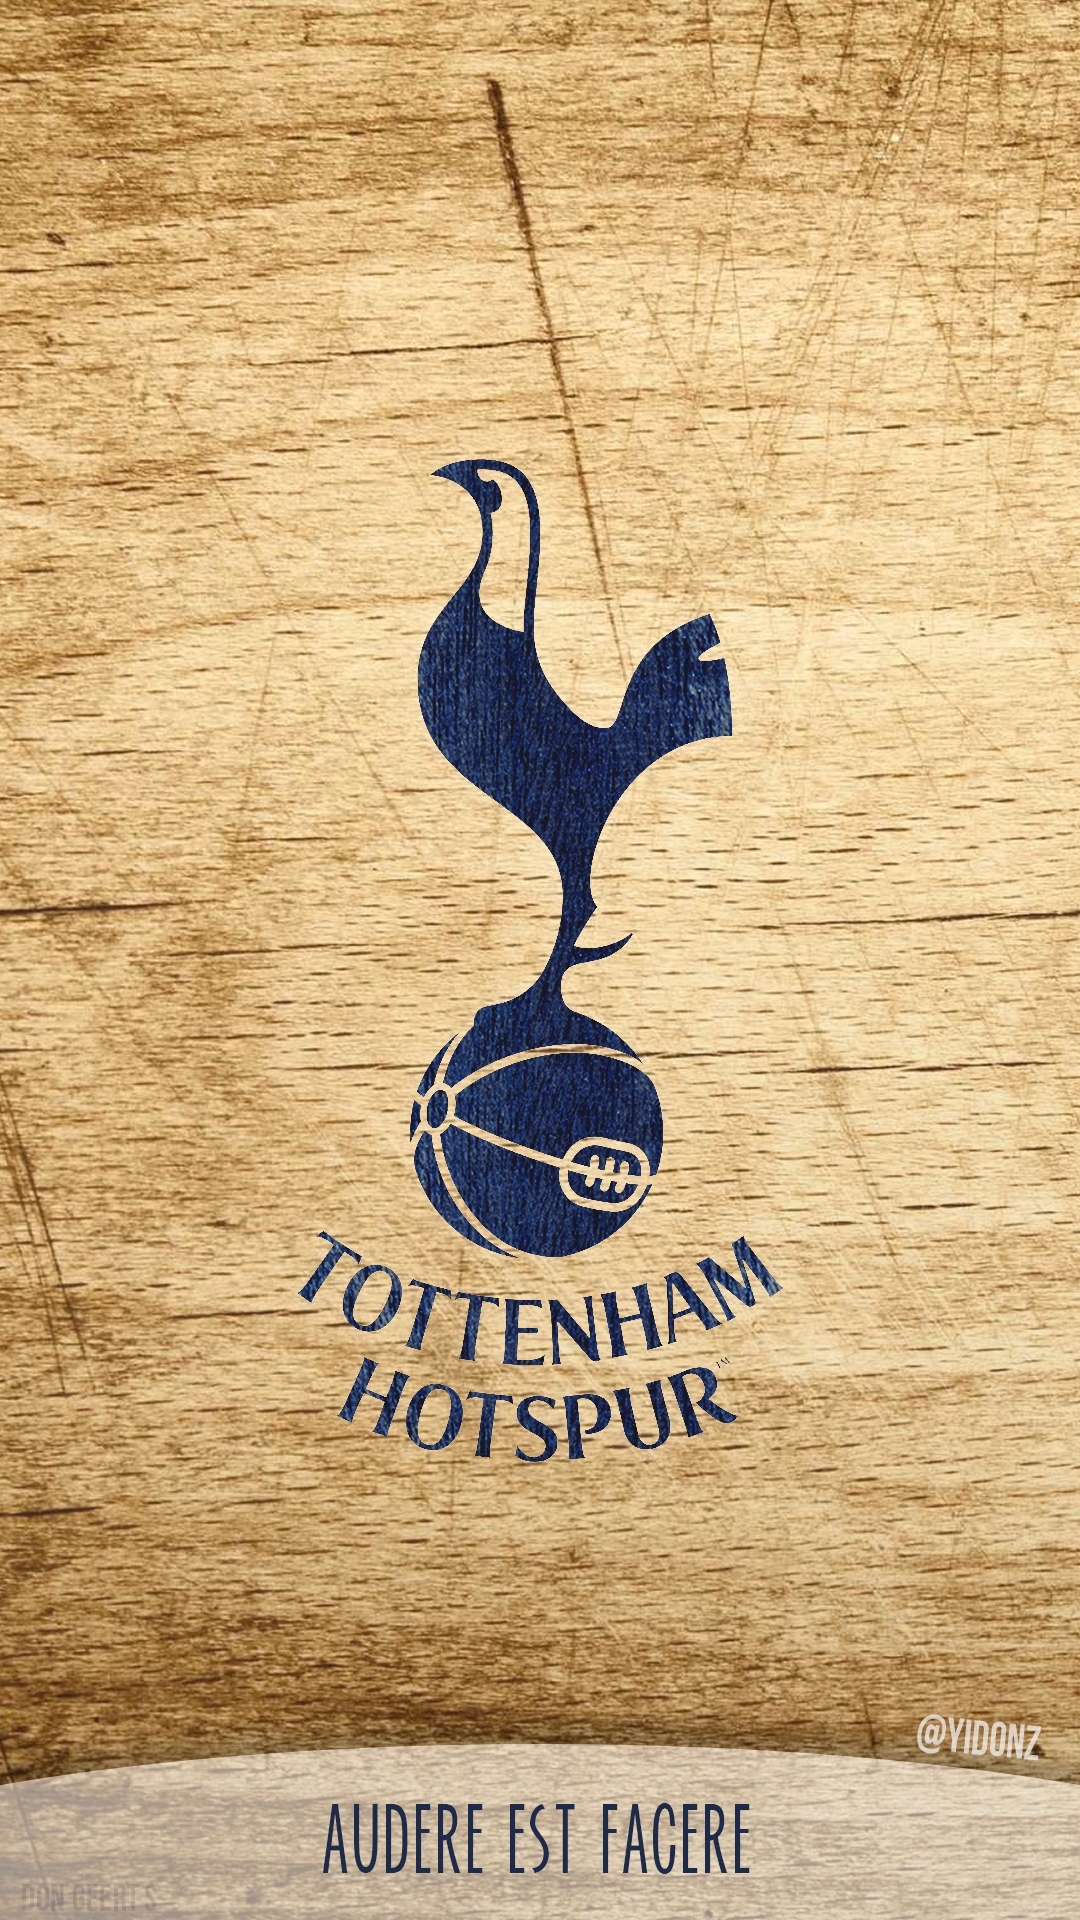 10 Best And Latest Tottenham Hotspur Iphone Wallpaper for Desktop Computer with FULL HD 1080p (1920 × 1080) FREE DOWNLOAD